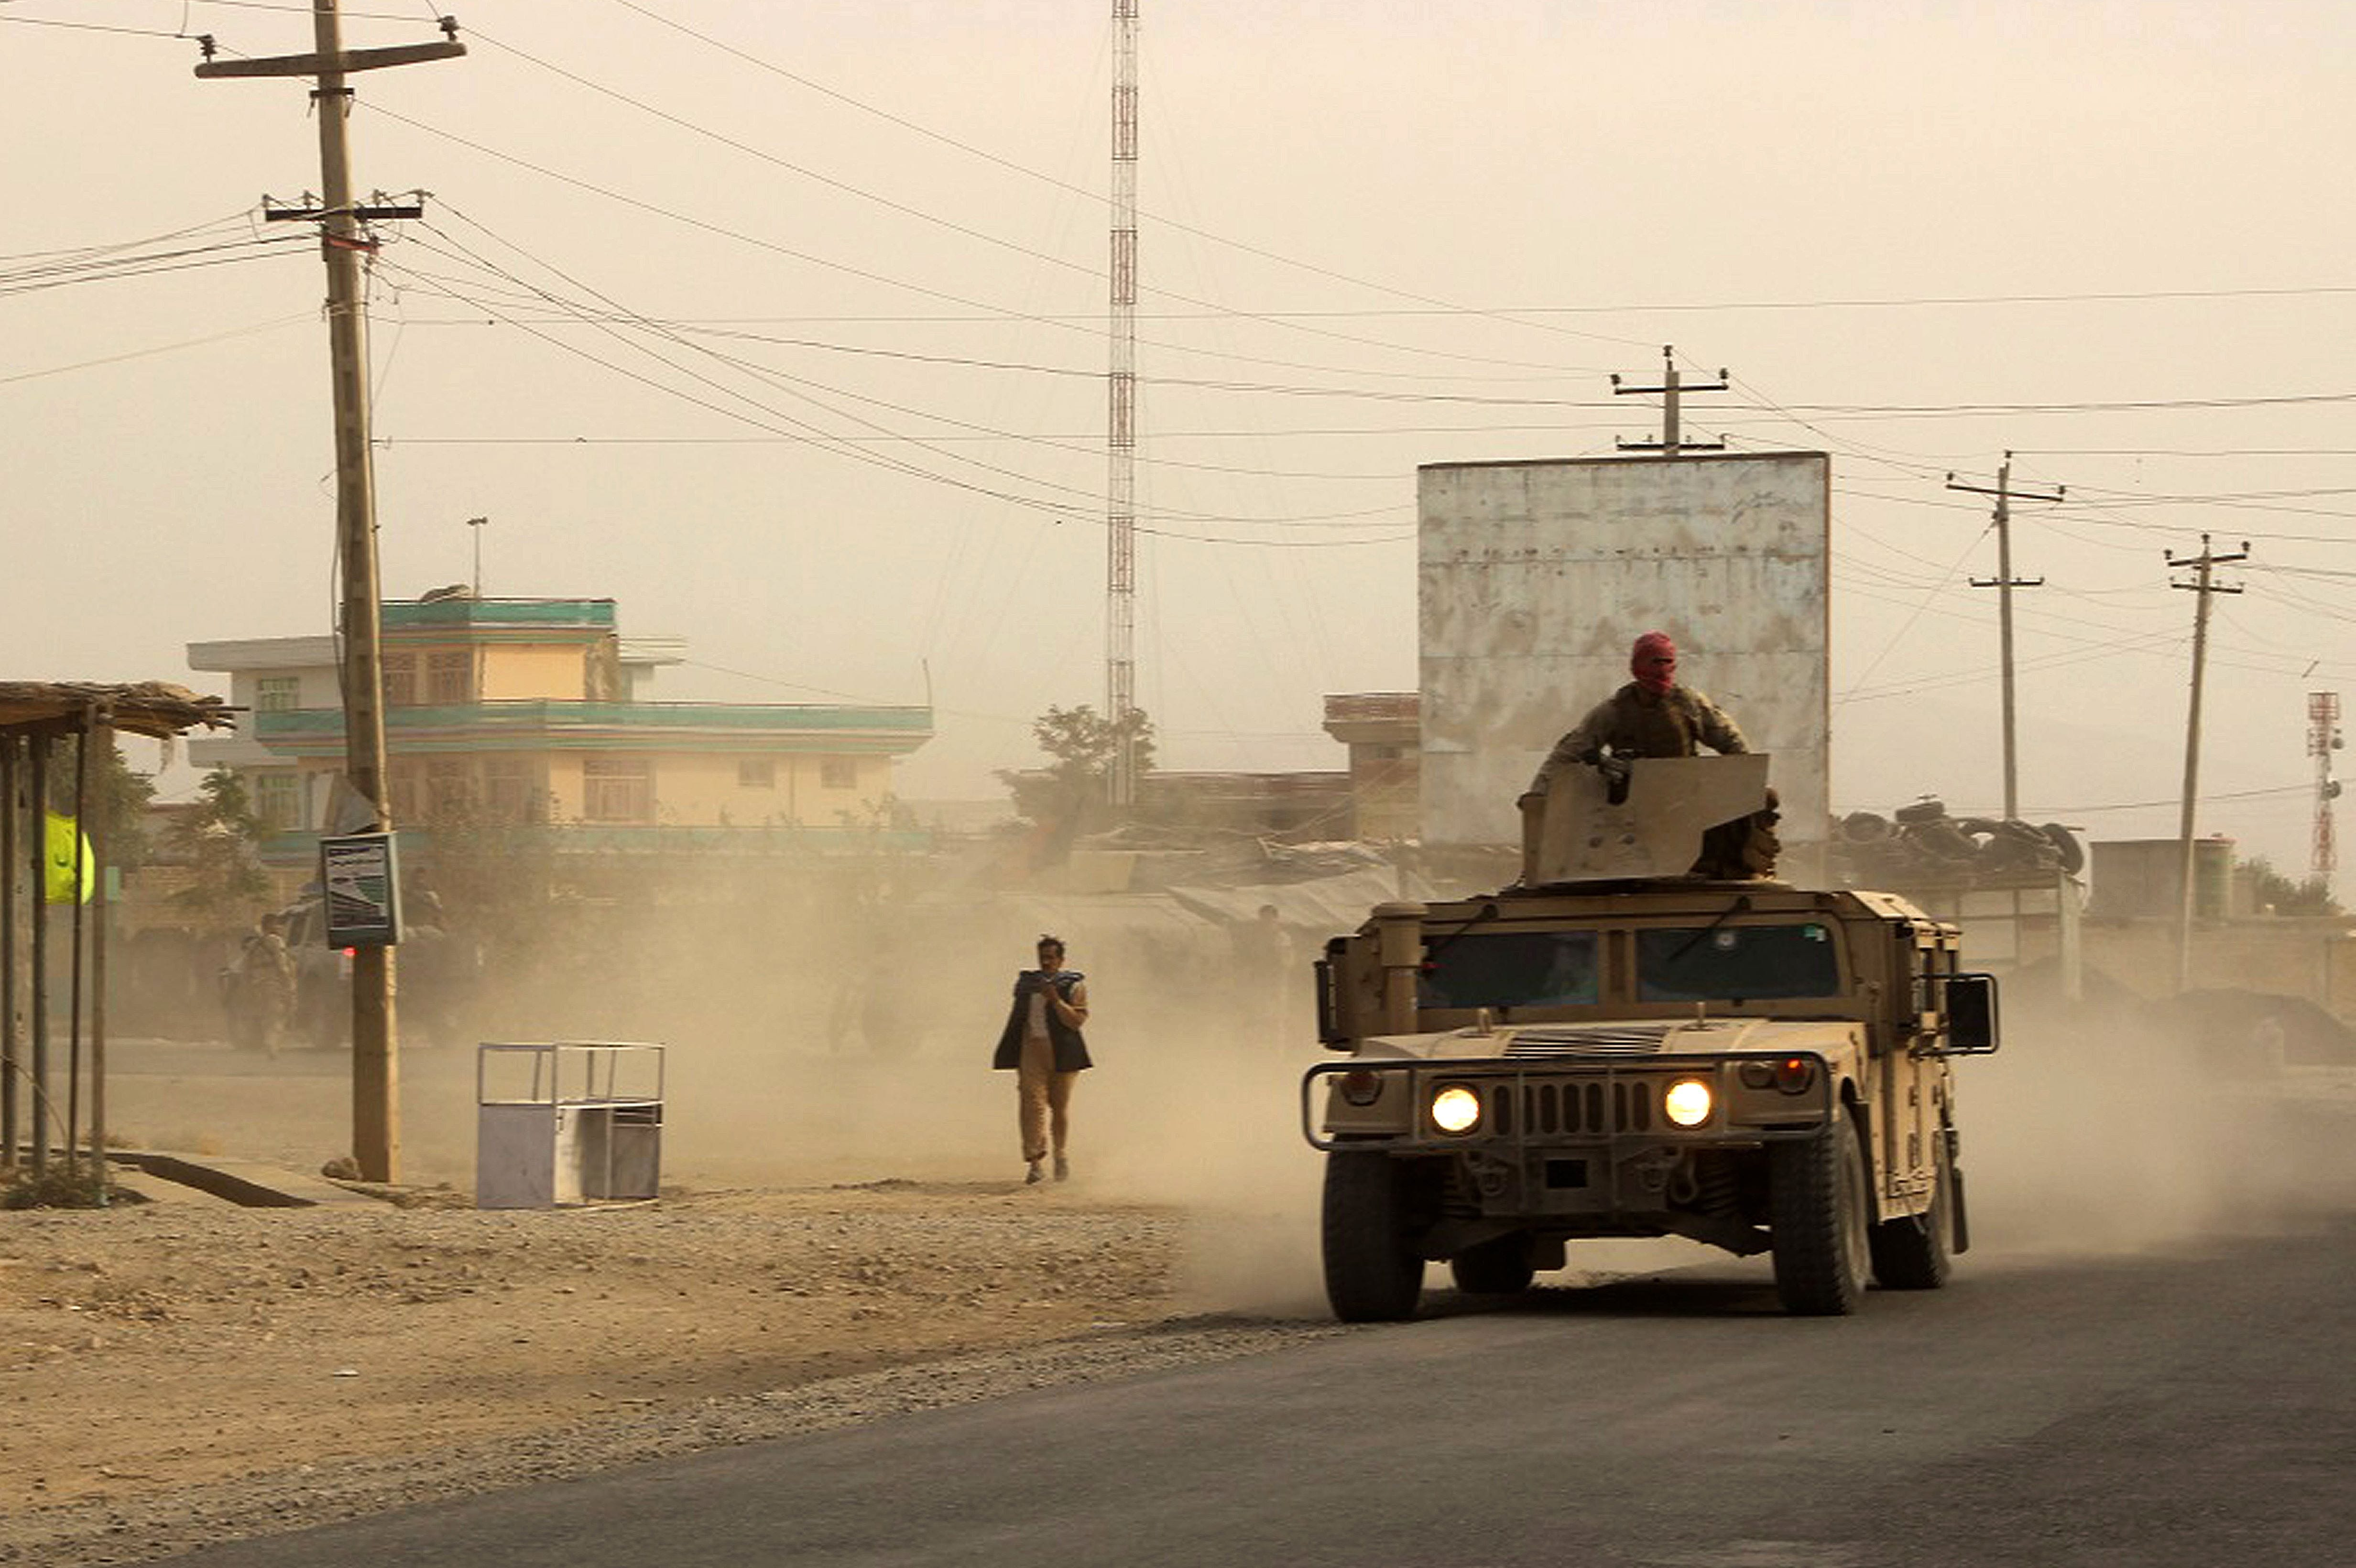 U.S. gives Humvees to Afghan army, then blows them up when they fall into Taliban hands